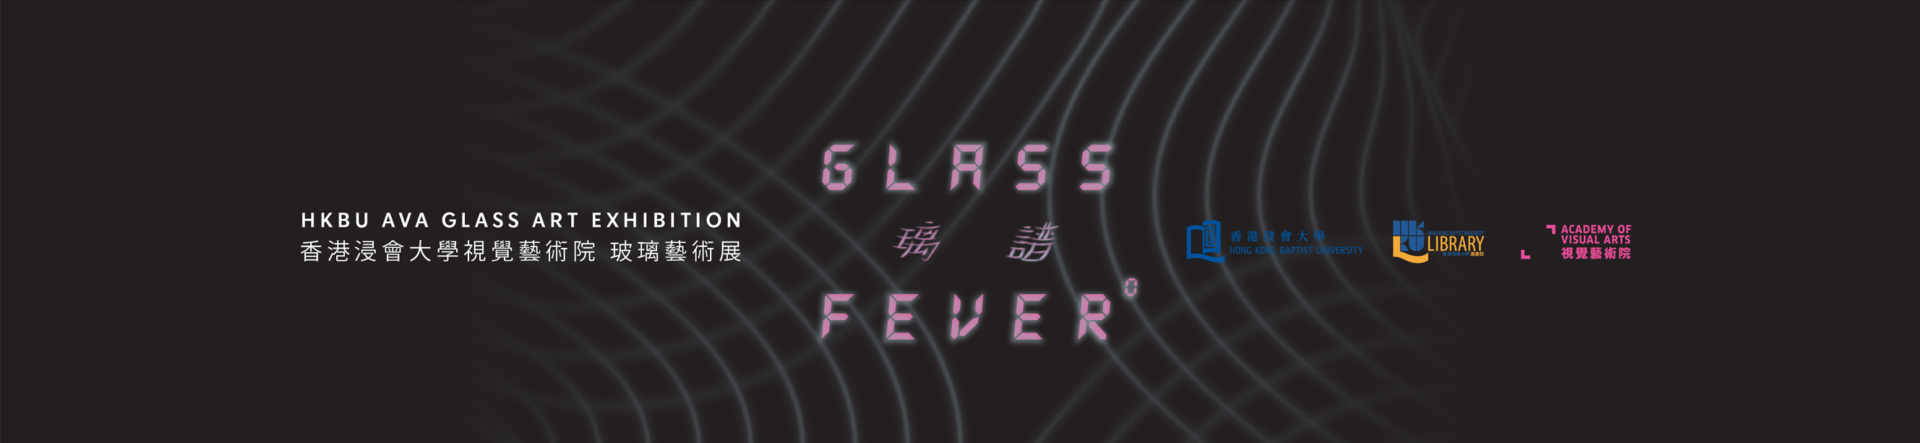 Library Exhibition - Glass Fever